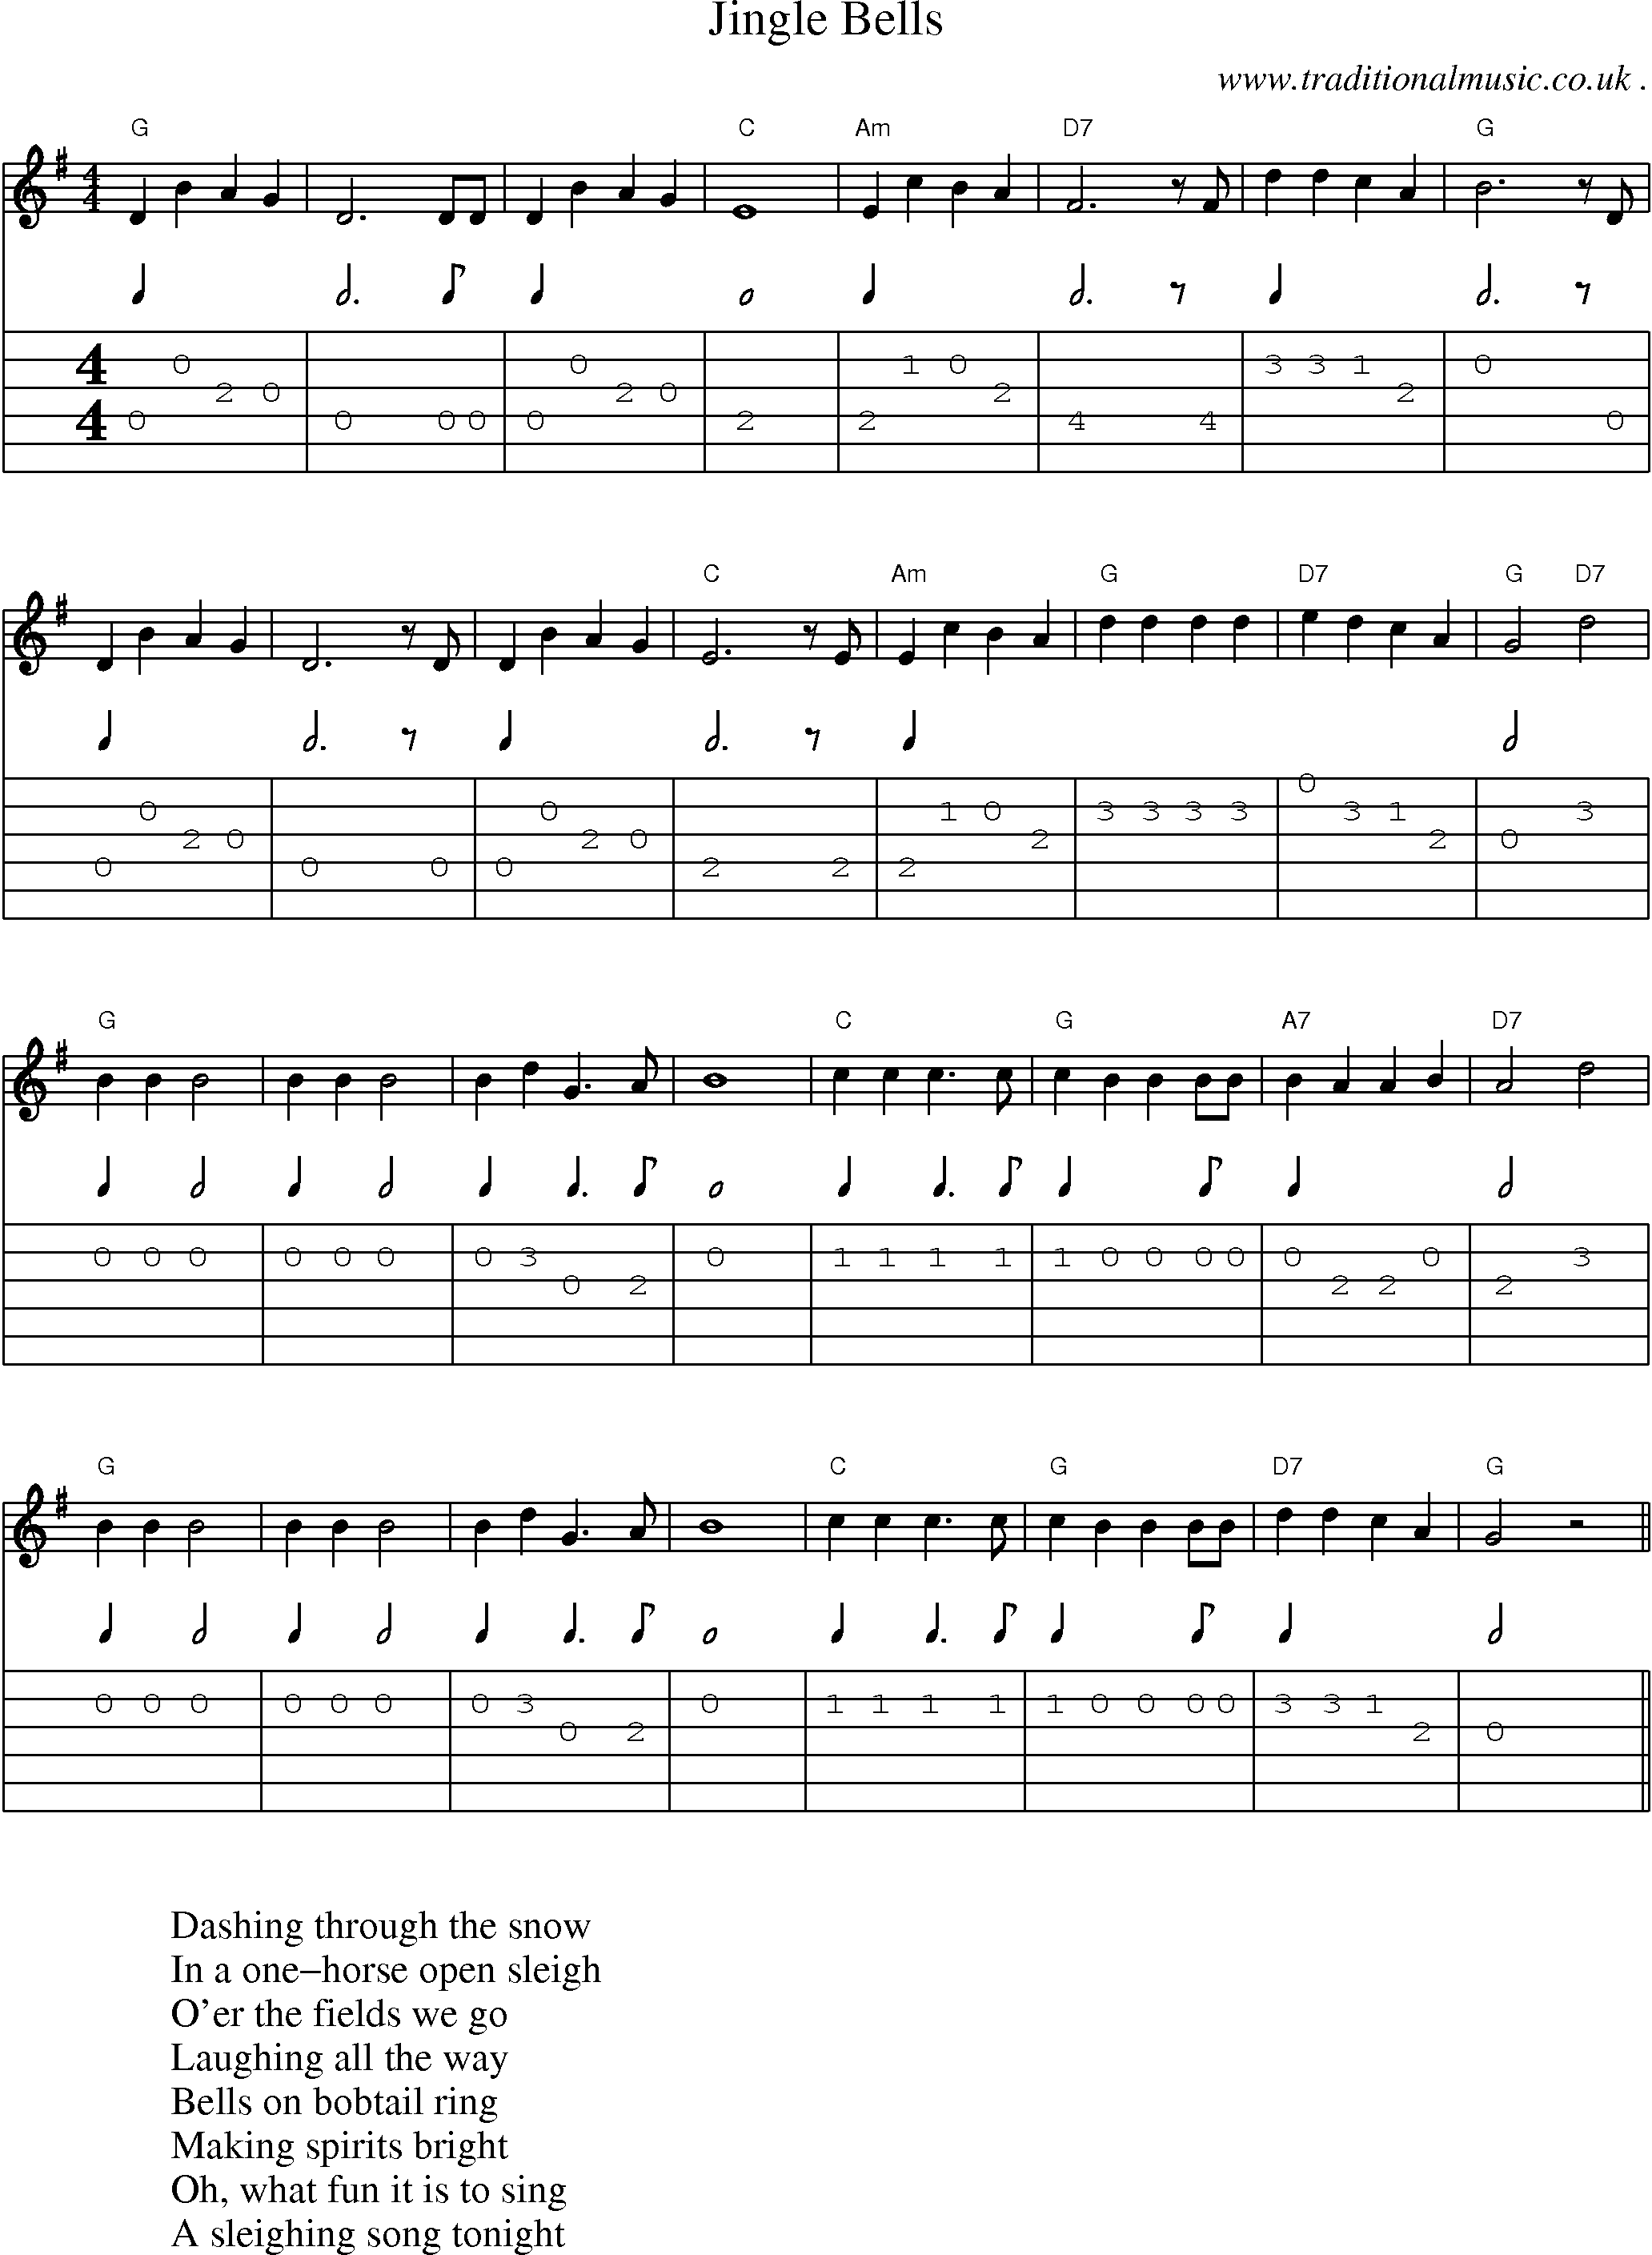 american old time music scores and tabs for guitar jingle bells. Black Bedroom Furniture Sets. Home Design Ideas